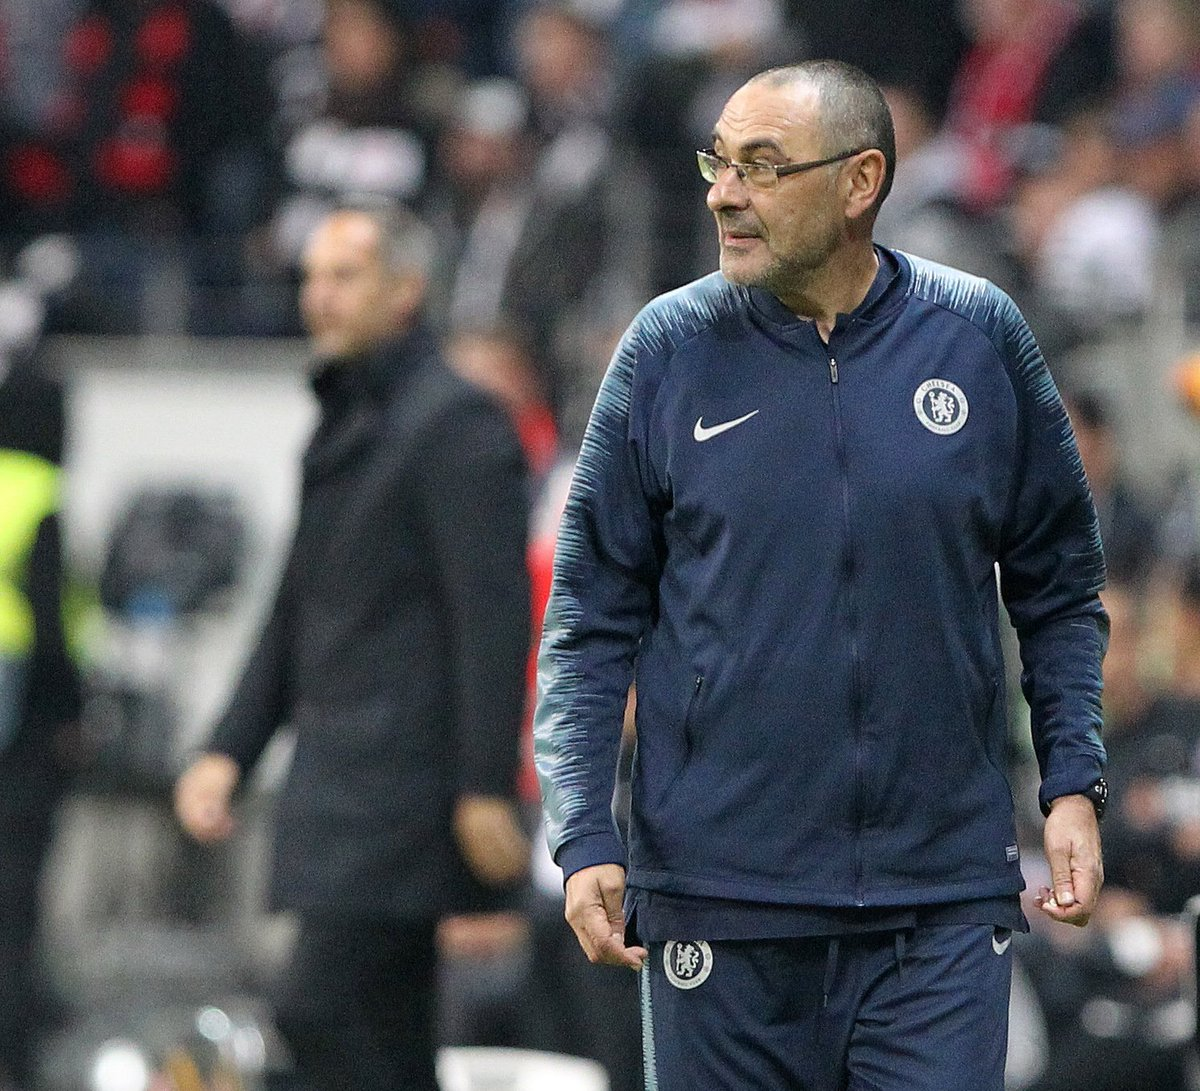 Maurizio Sarri looking closer to winning his first trophy in his coaching career. Come May 29. #UELfinal #ChelseaFC #CFC